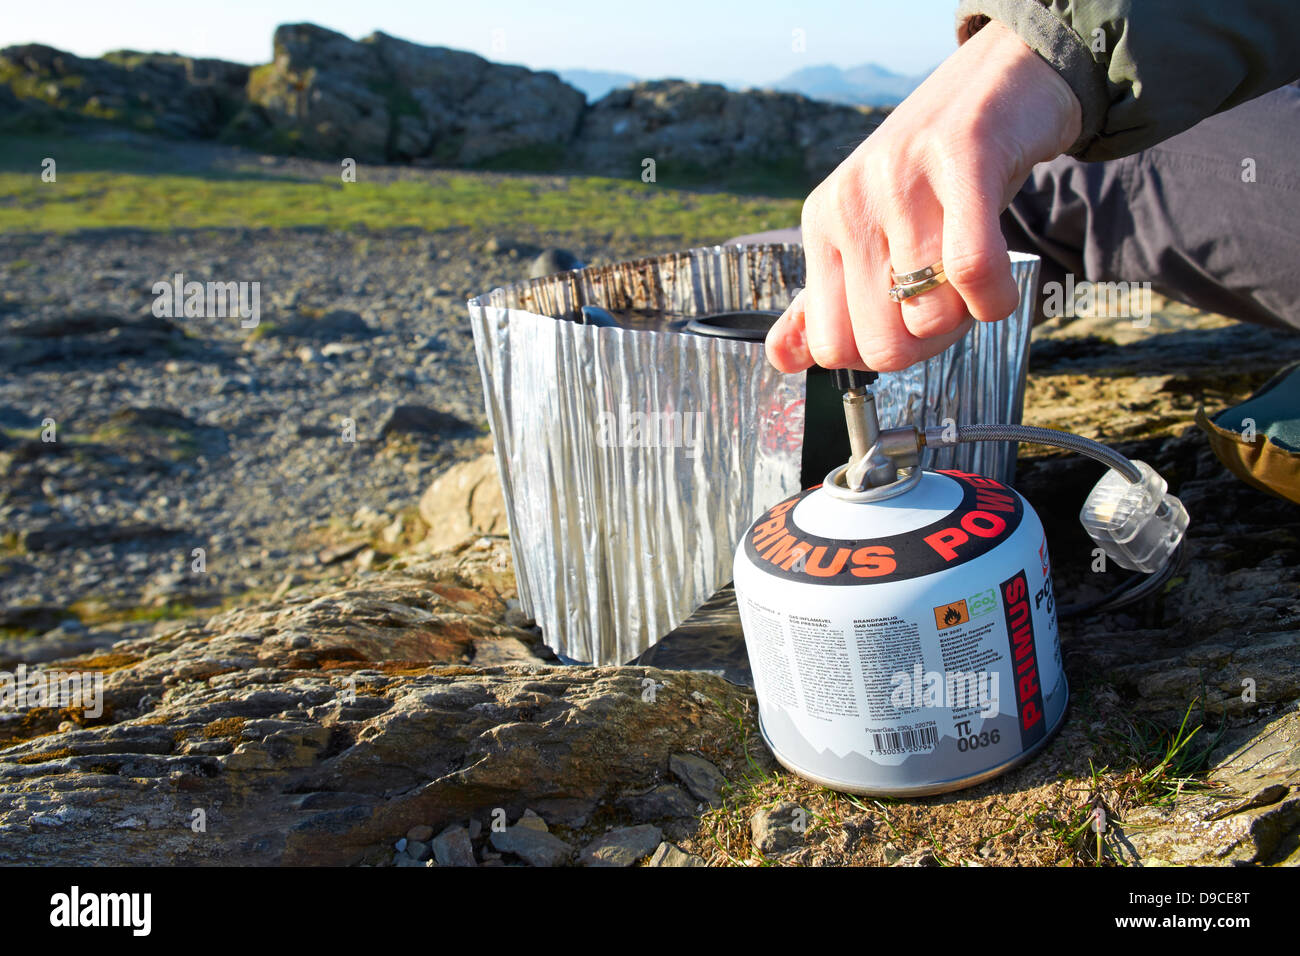 A hiker cooking on a camping stove on the summit of a Robinson in the Lake District. - Stock Image